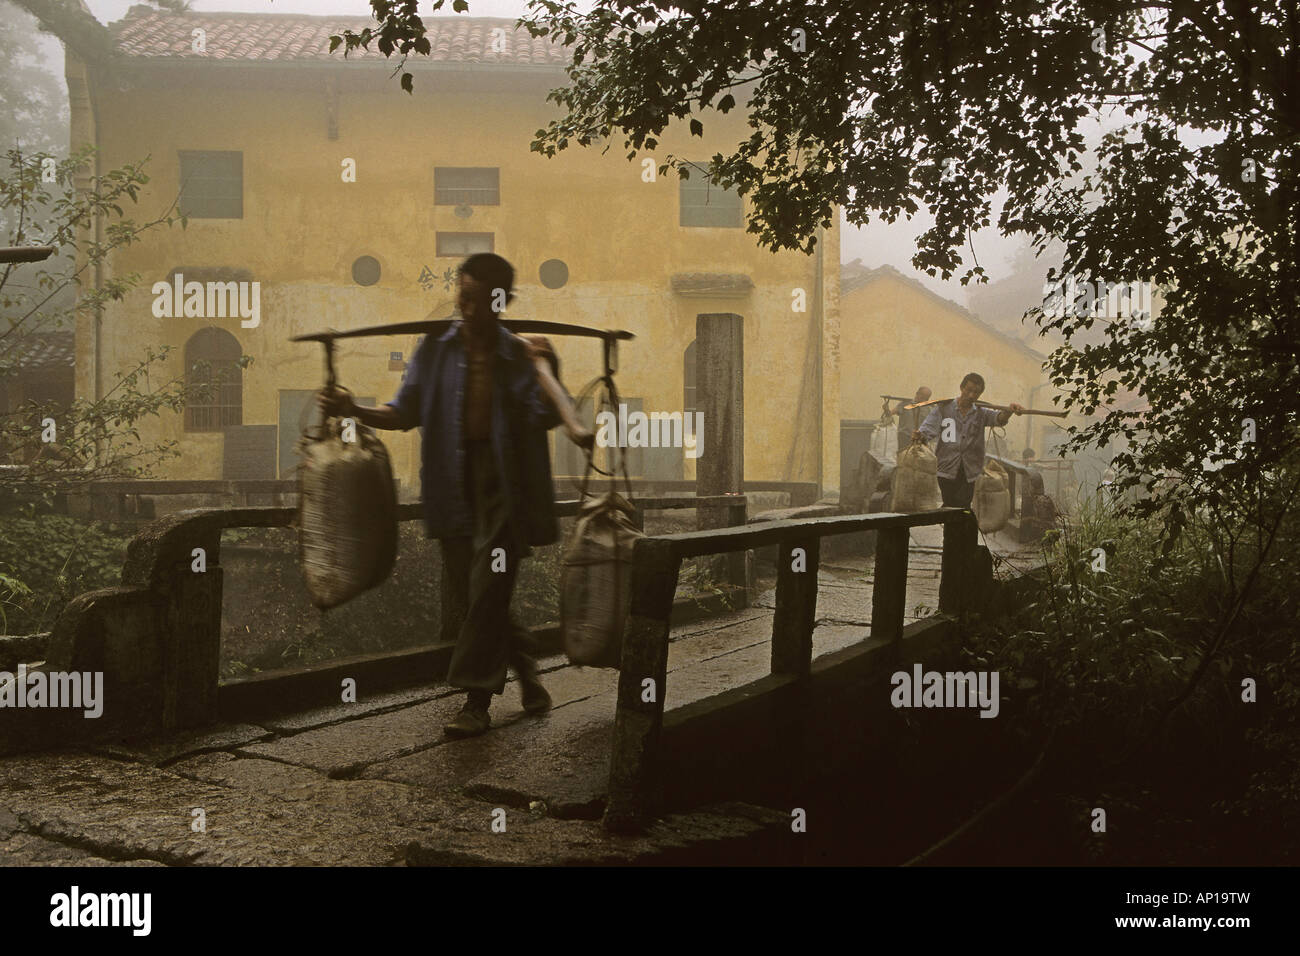 Porters carrying building material in front of Tianchi monastery at the village Jiuhuashan, Anhui province, China, - Stock Image